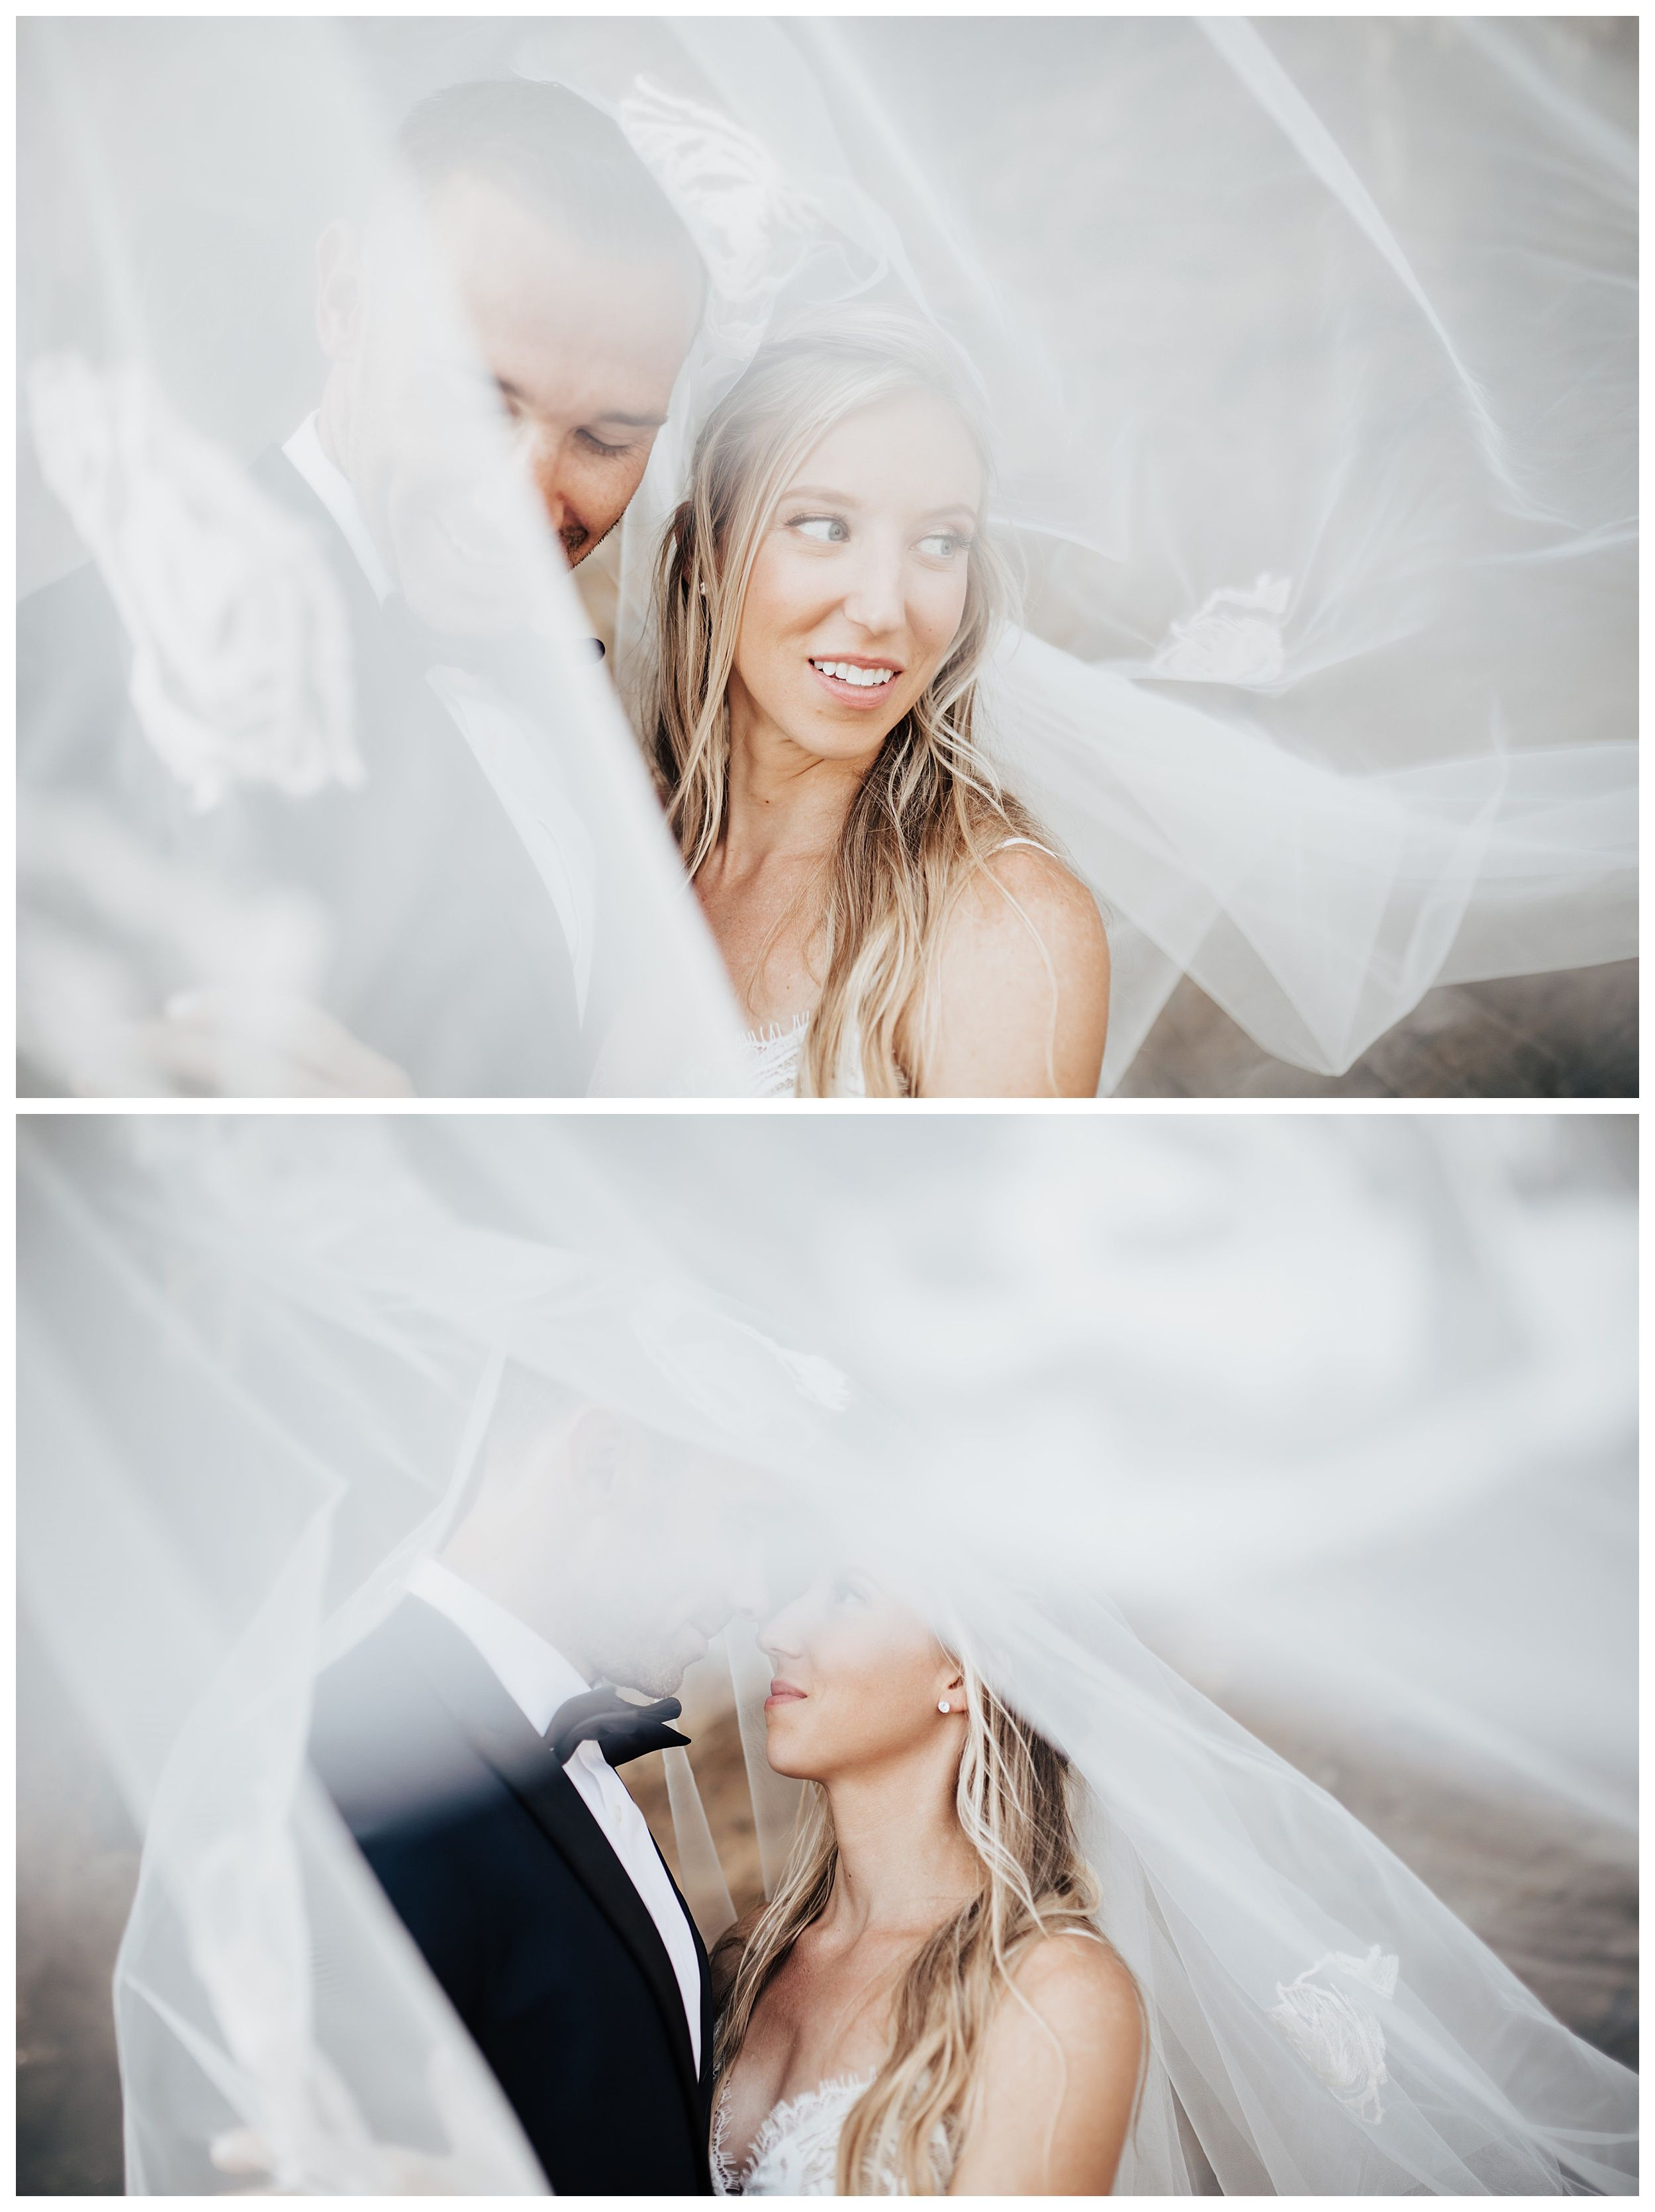 bride and groom under veil, wedding photo inspiration, veil wedding photo